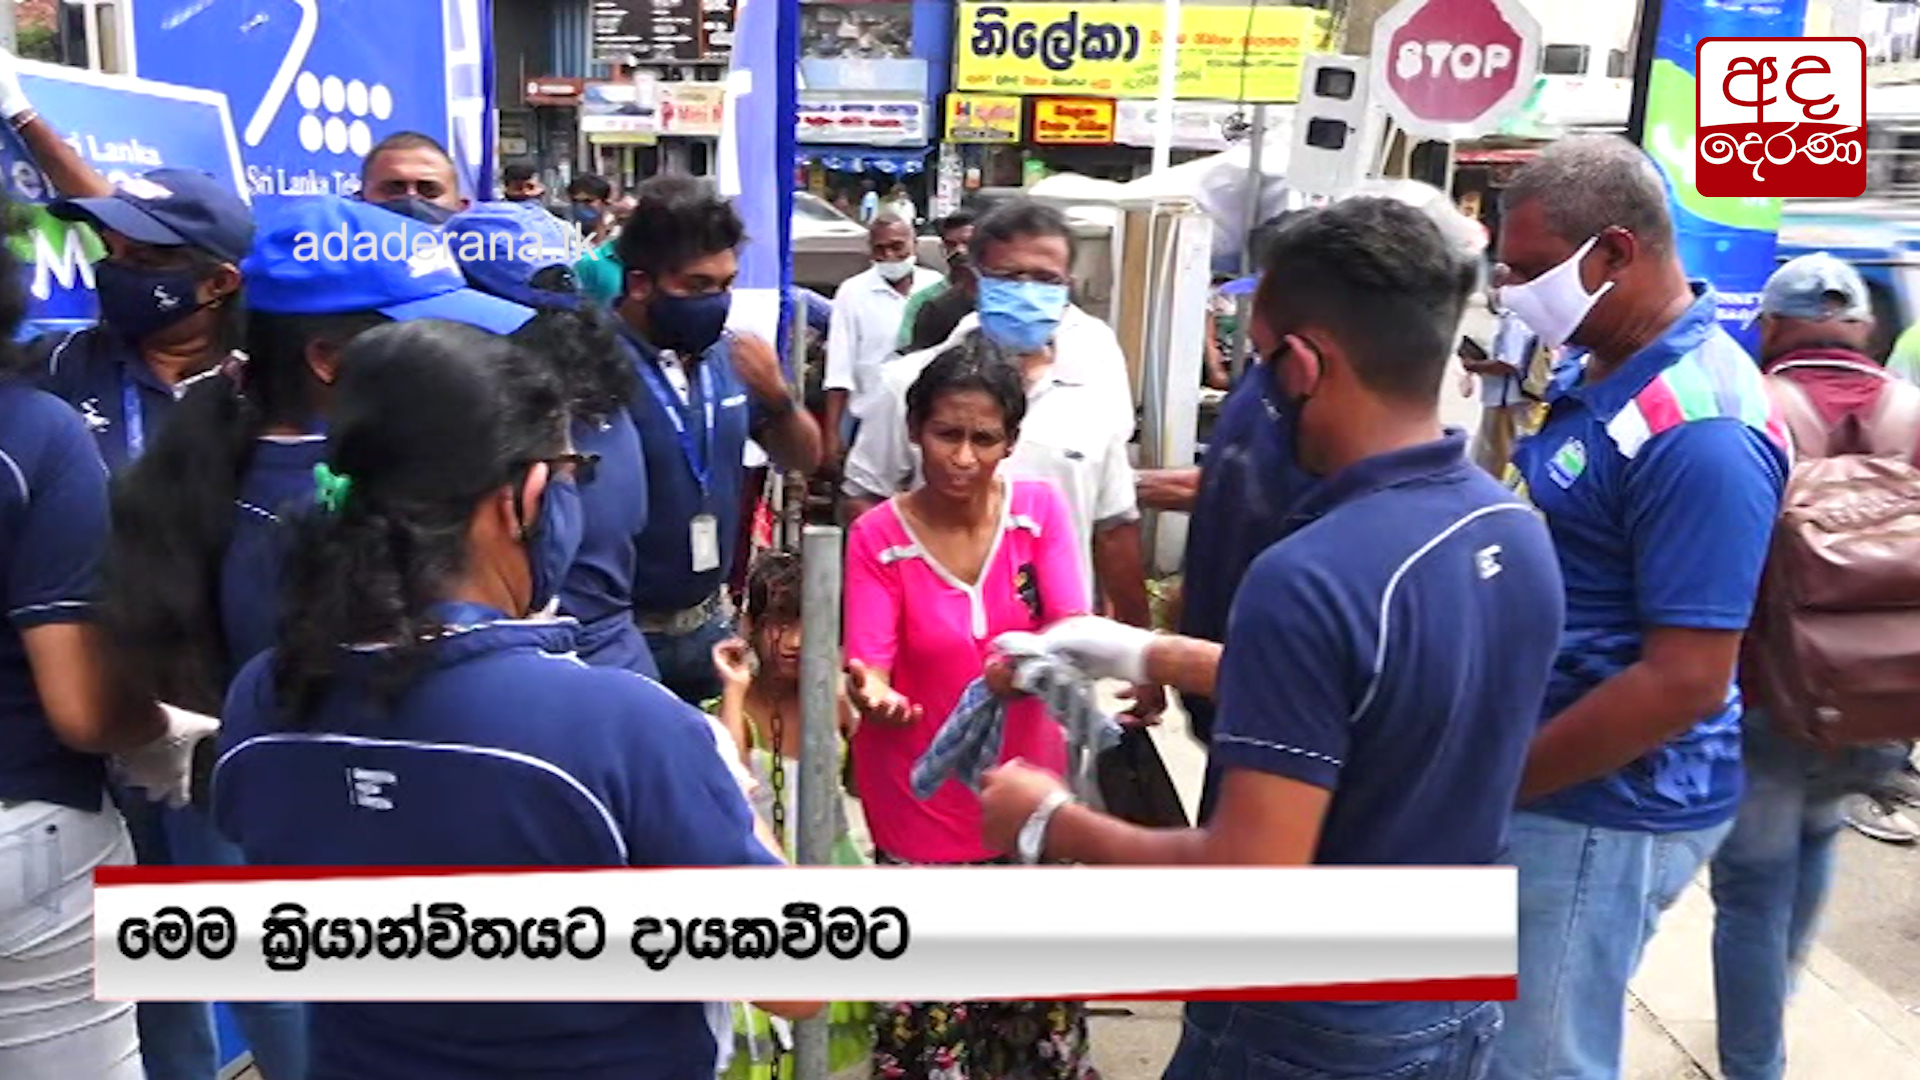 Day 19 of Manusath Derana free facemask distribution program